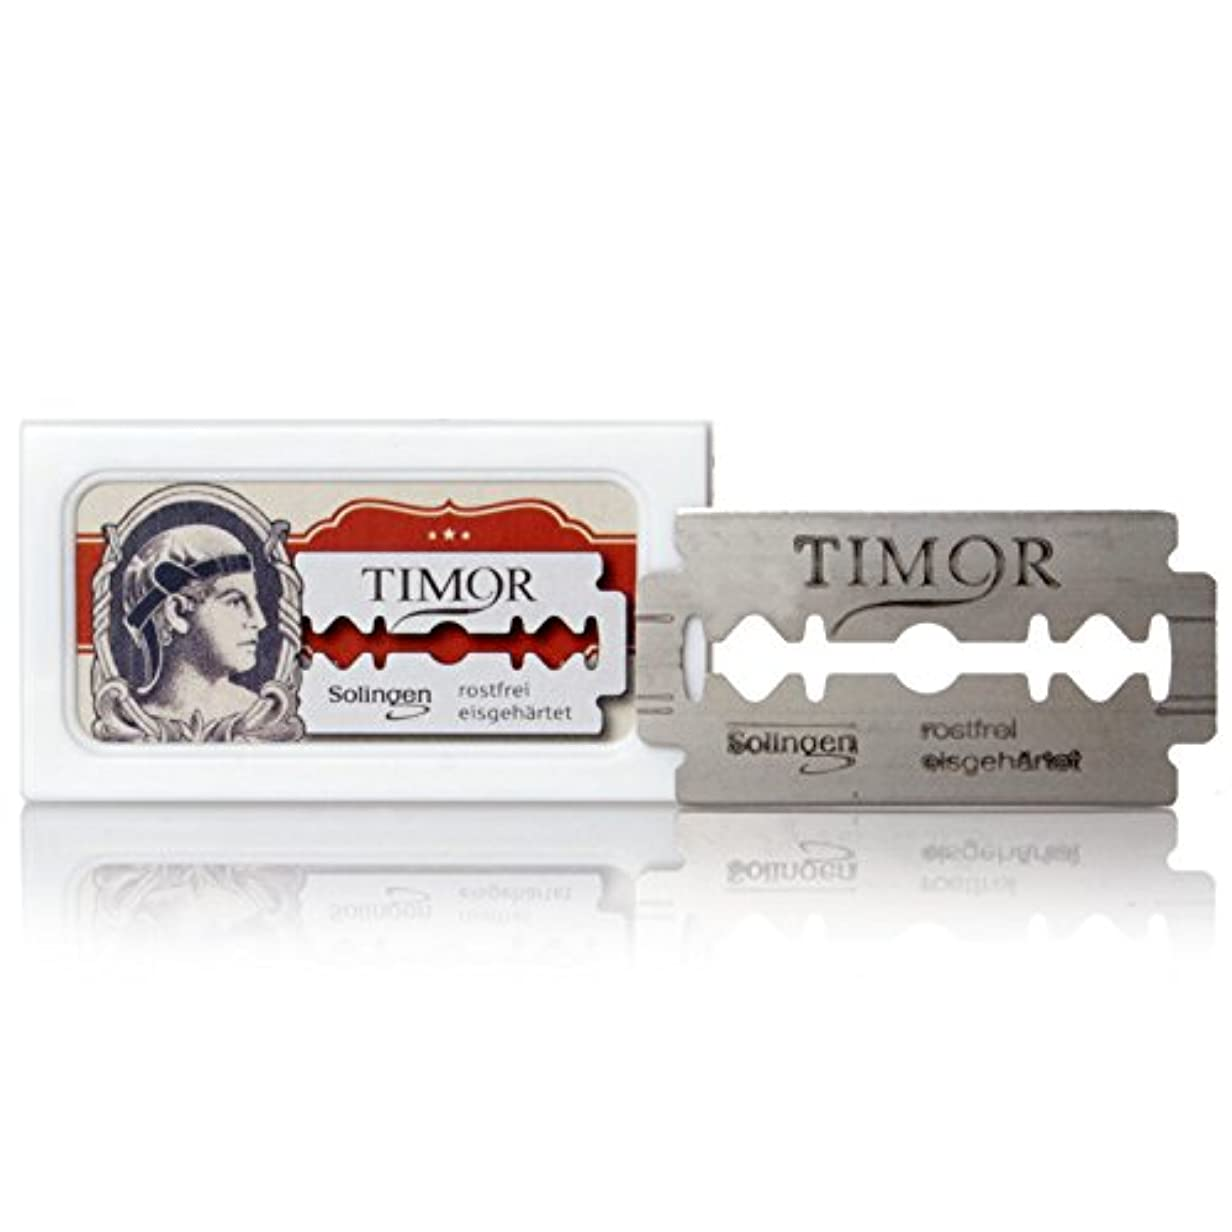 Timor - razor blades, stainless, 10 pieces